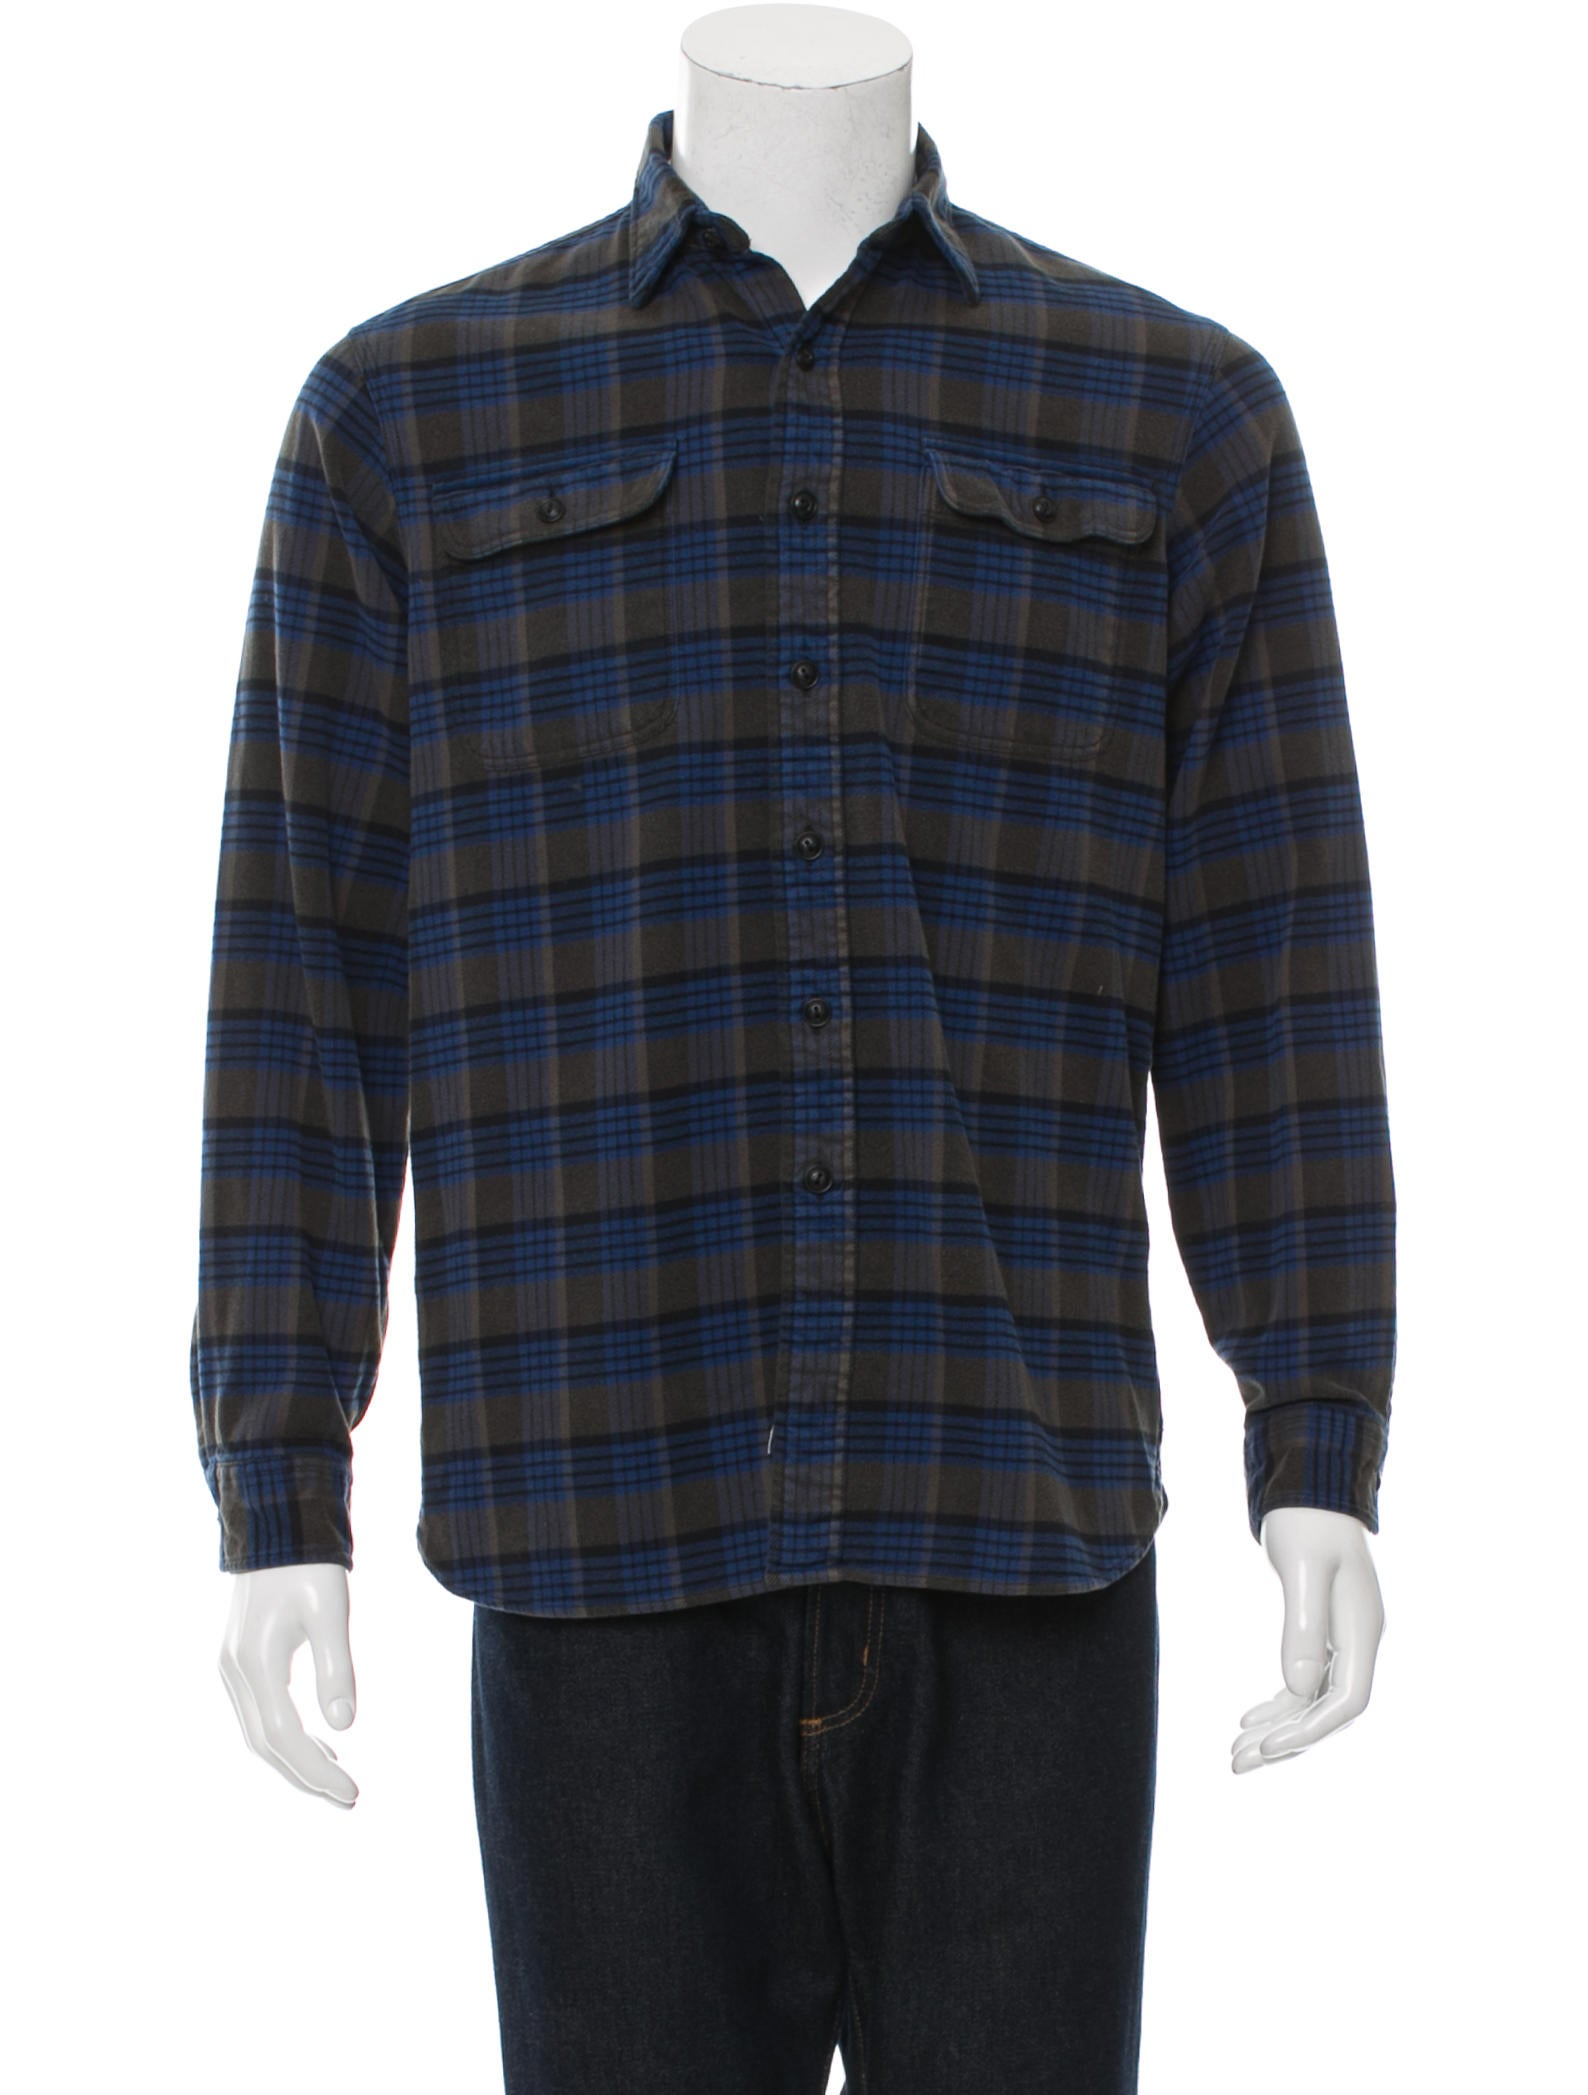 rrl co flannel button up shirt clothing wrrll20482